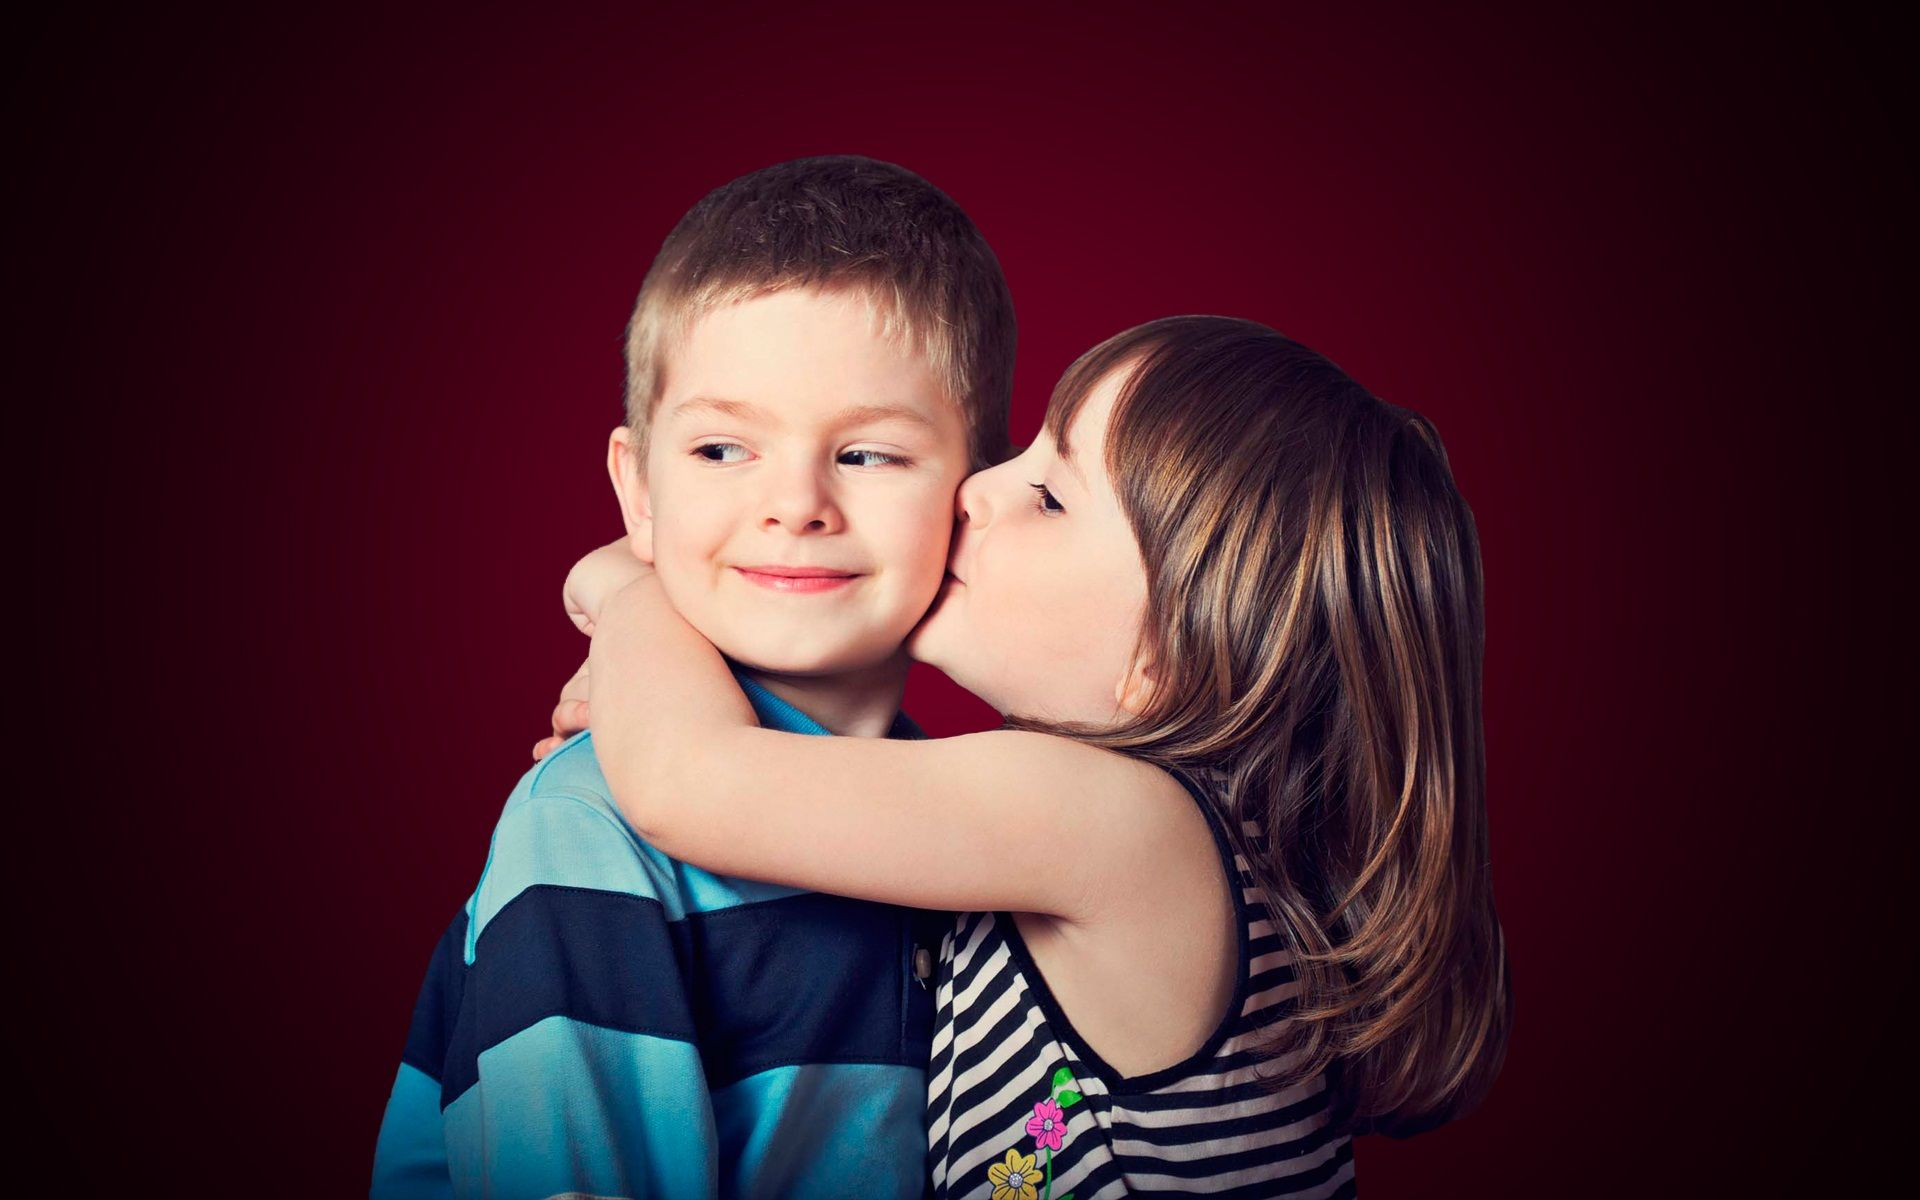 romantic hug and kisses wallpaper | little cute baby hug and kissing